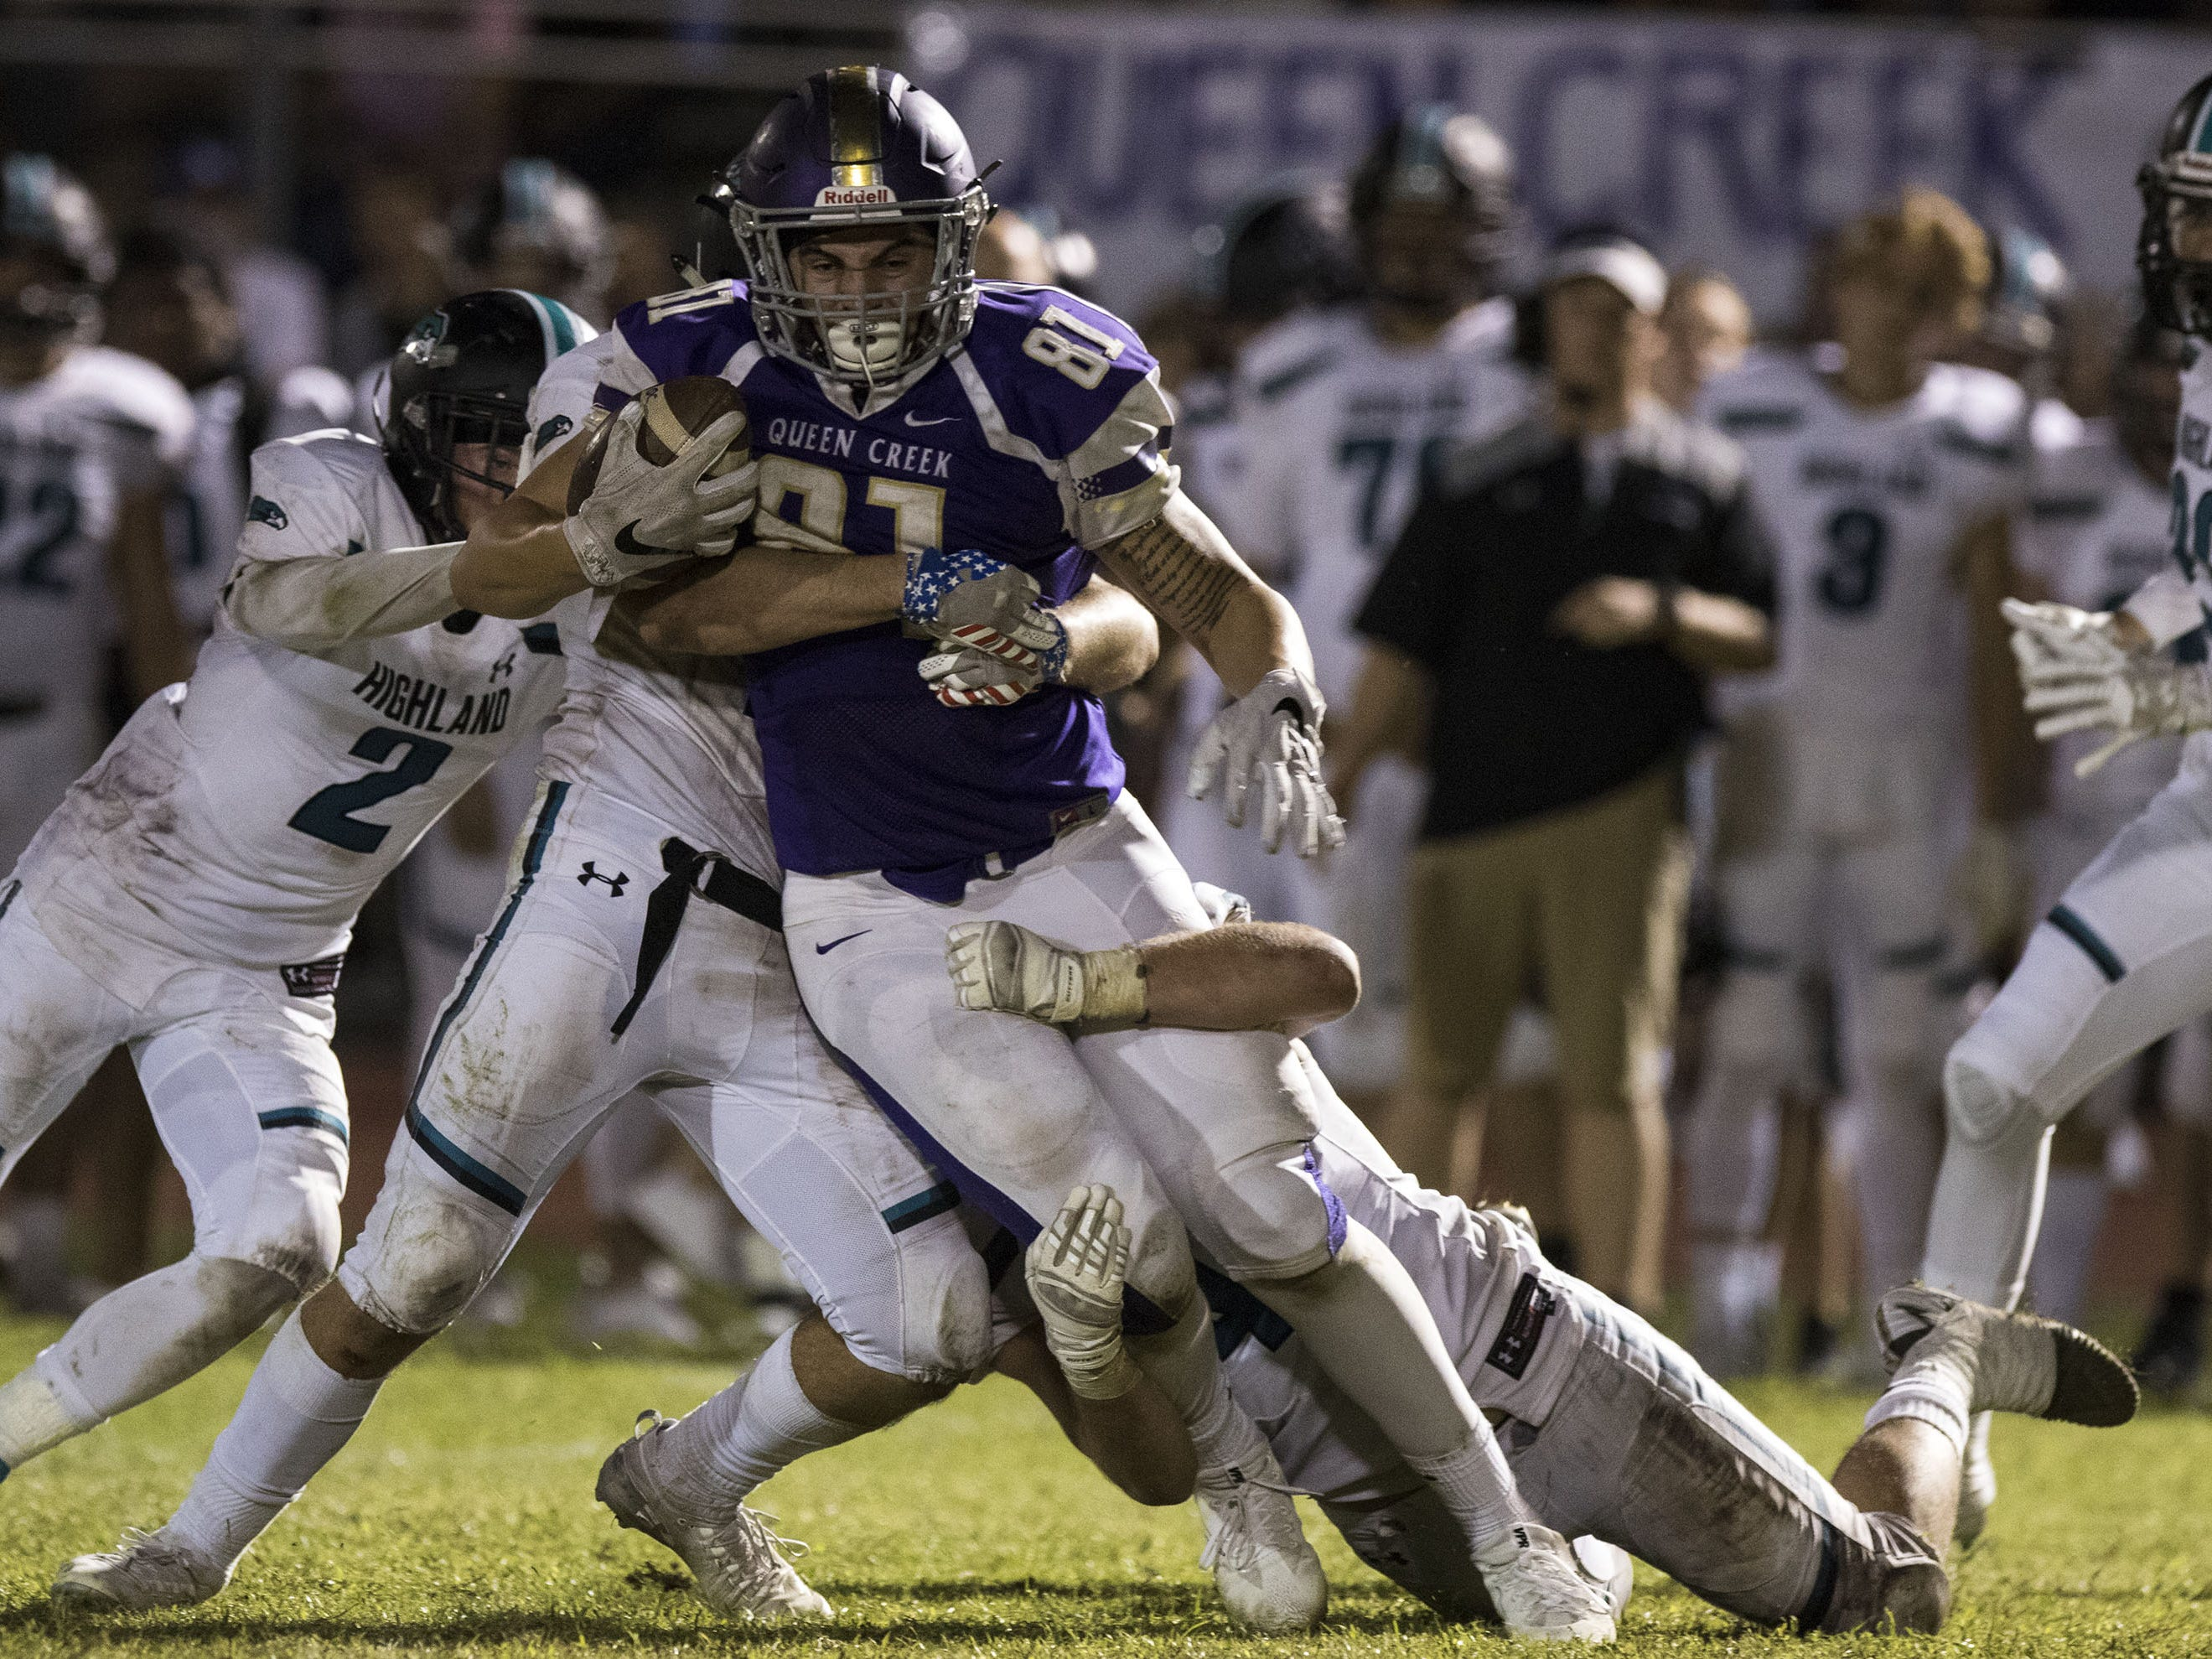 Queen Creek's Rafael Aldecoa gets wrangled by a pack of Highland defenders during their game in Queen Creek Friday, Oct. 19, 2018. #azhsfb